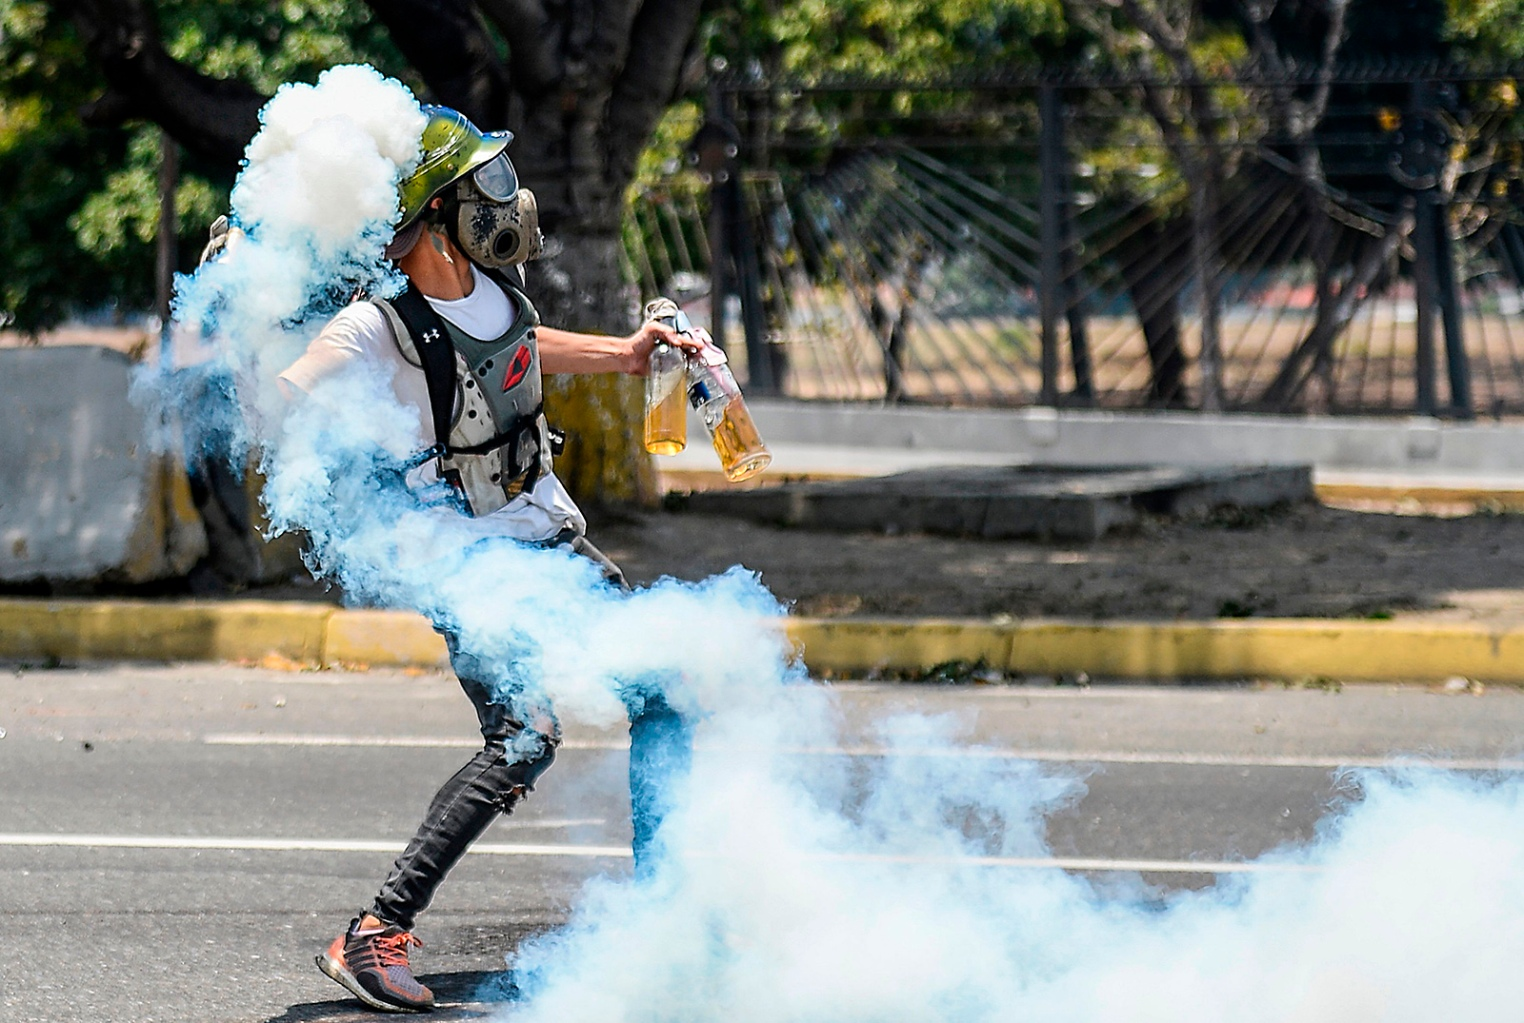 An anti-government protester throws Molotov cocktails during clashes with security forces near La Carlota military base in Caracas during May Day on May 1 after a day of violent clashes on the streets of the capital spurred by Venezuela's opposition leader Juan Guaido's call for the military to rise up against President Nicolas Maduro. MATIAS DELACROIX/AFP/Getty Images